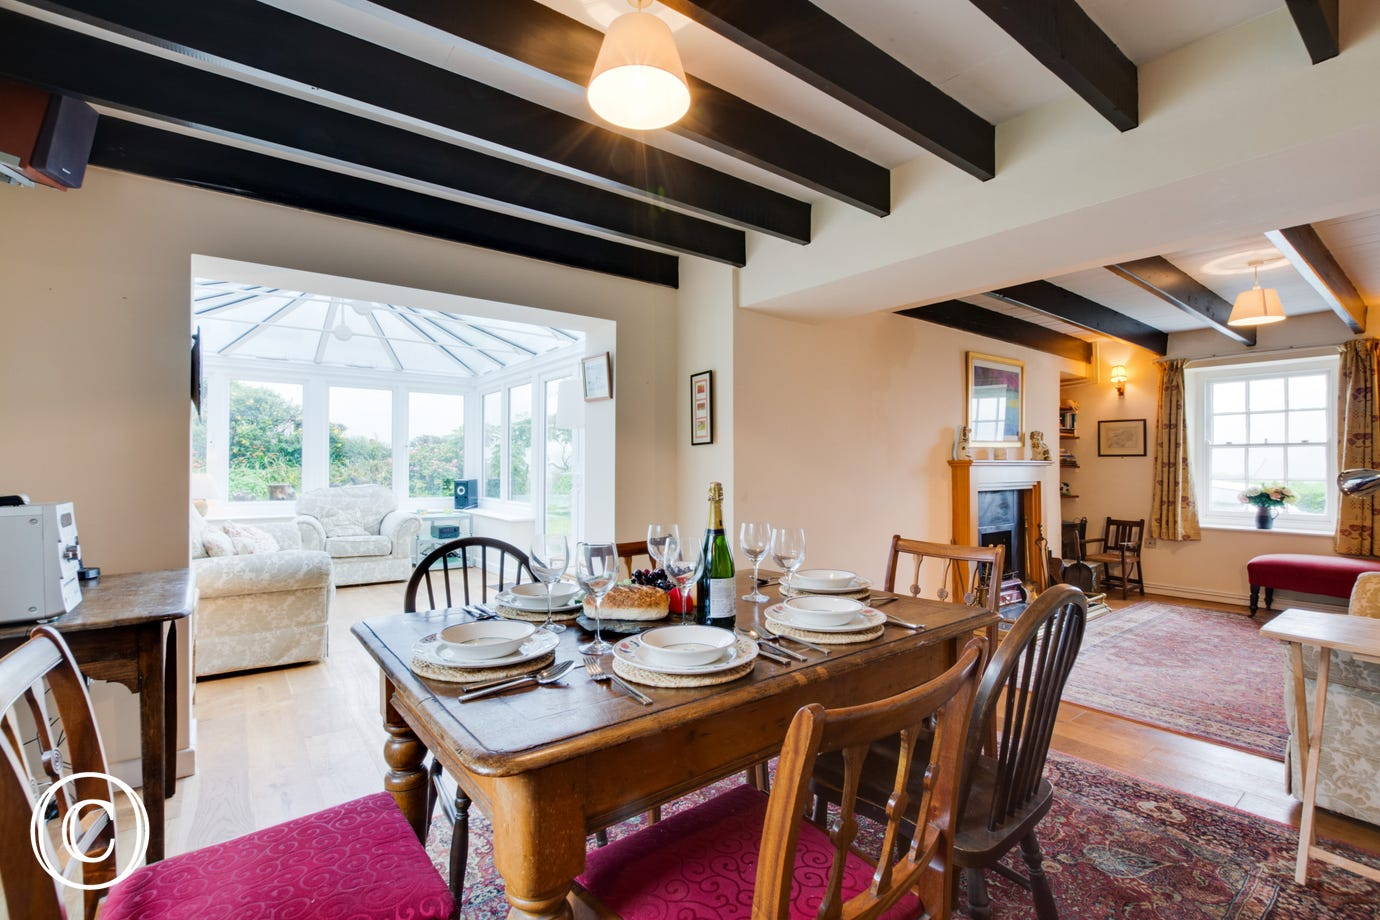 Self catering accommodation with dining room table and chairs.